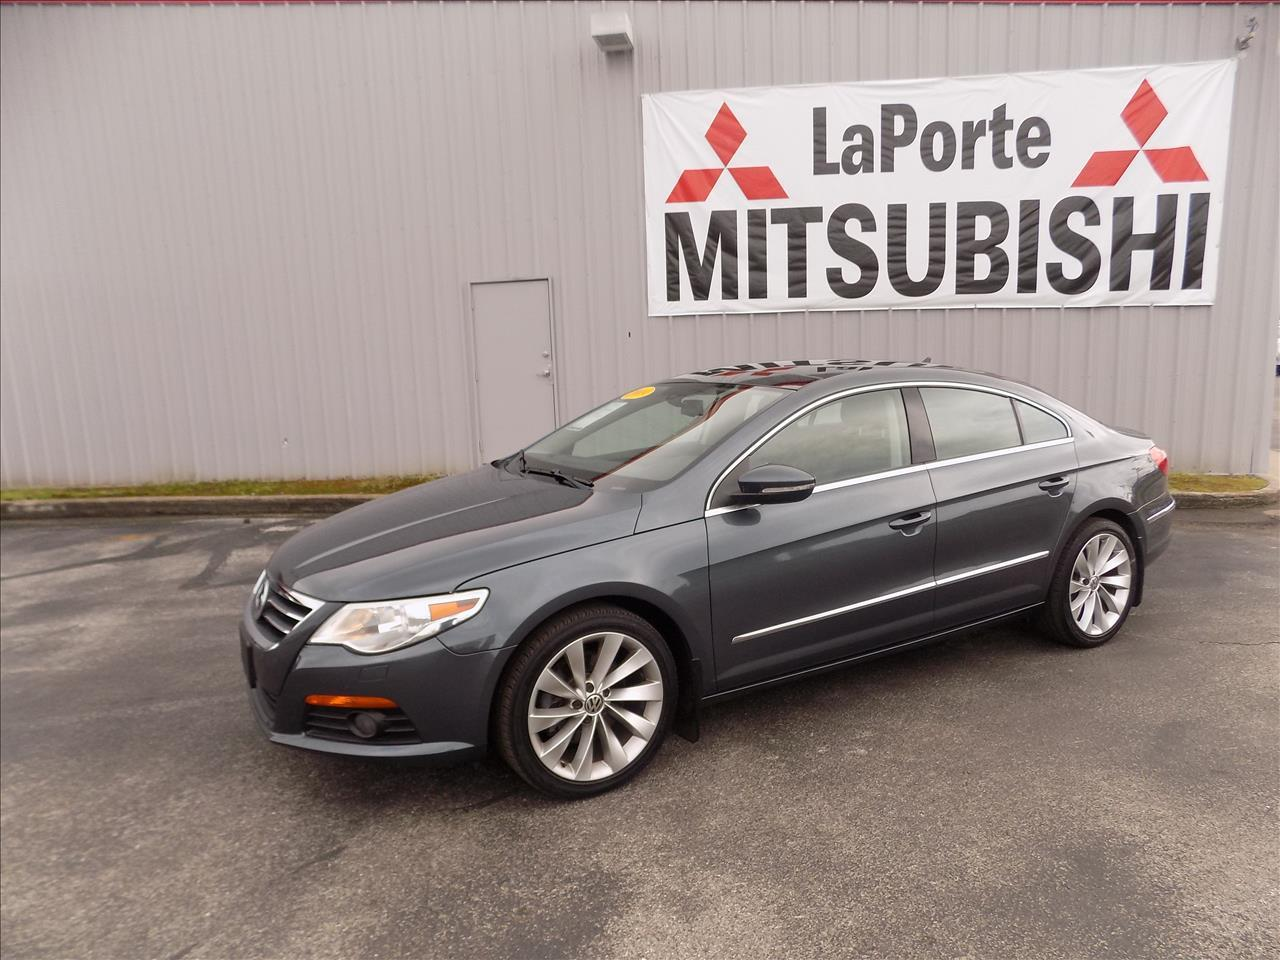 2009 VOLKSWAGEN CC VR6 SPORT 4DR SEDAN blue laporte mitsubishi w in-house advantage also can put